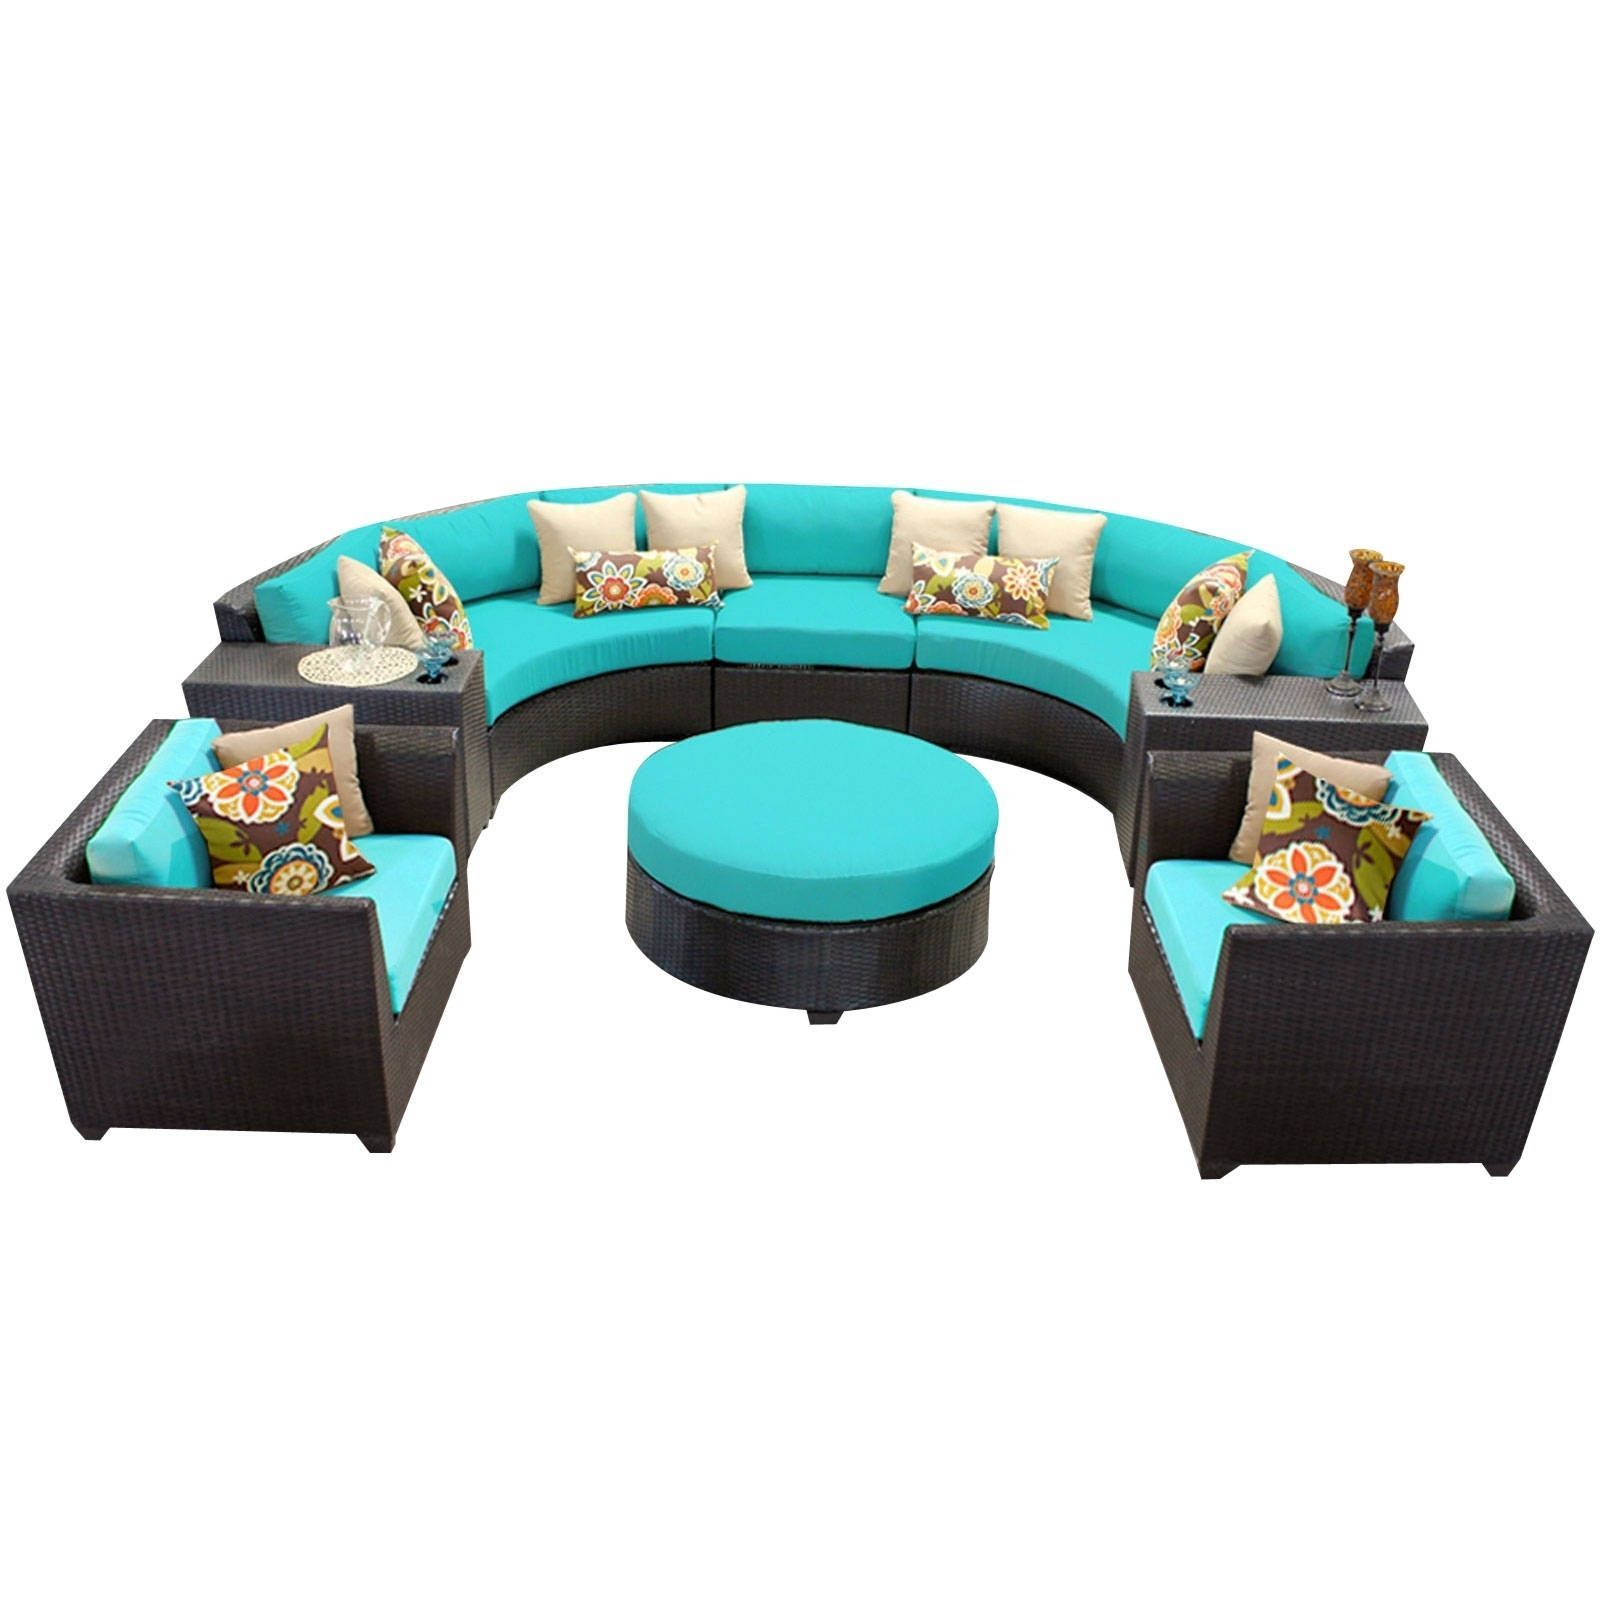 Meridian 8 Piece Outdoor Patio Rounded Wicker Sectional with Arm